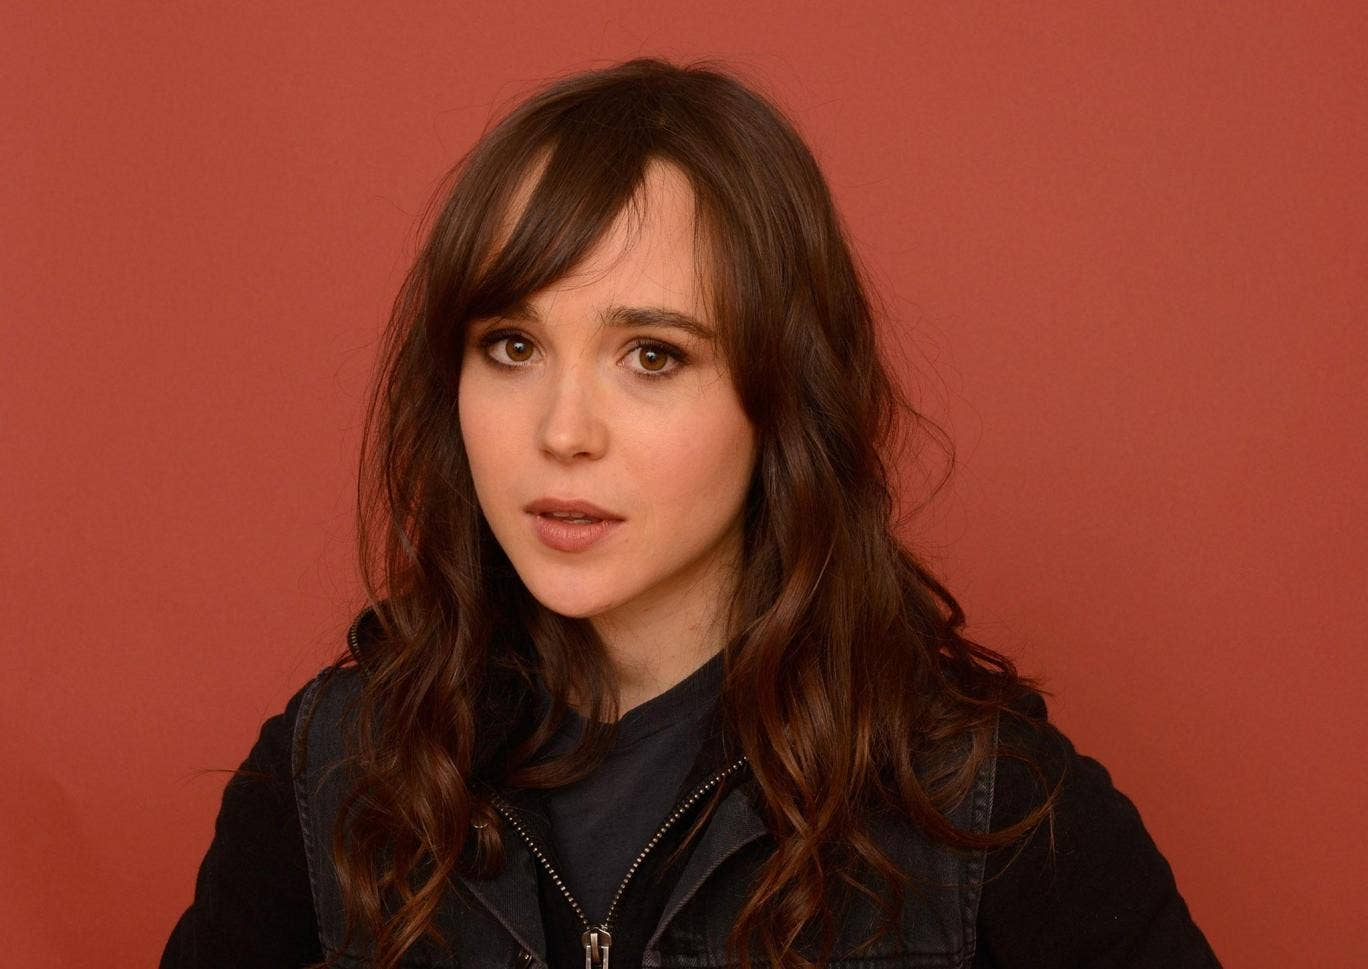 Actress Ellen Page came out as gay in February this year